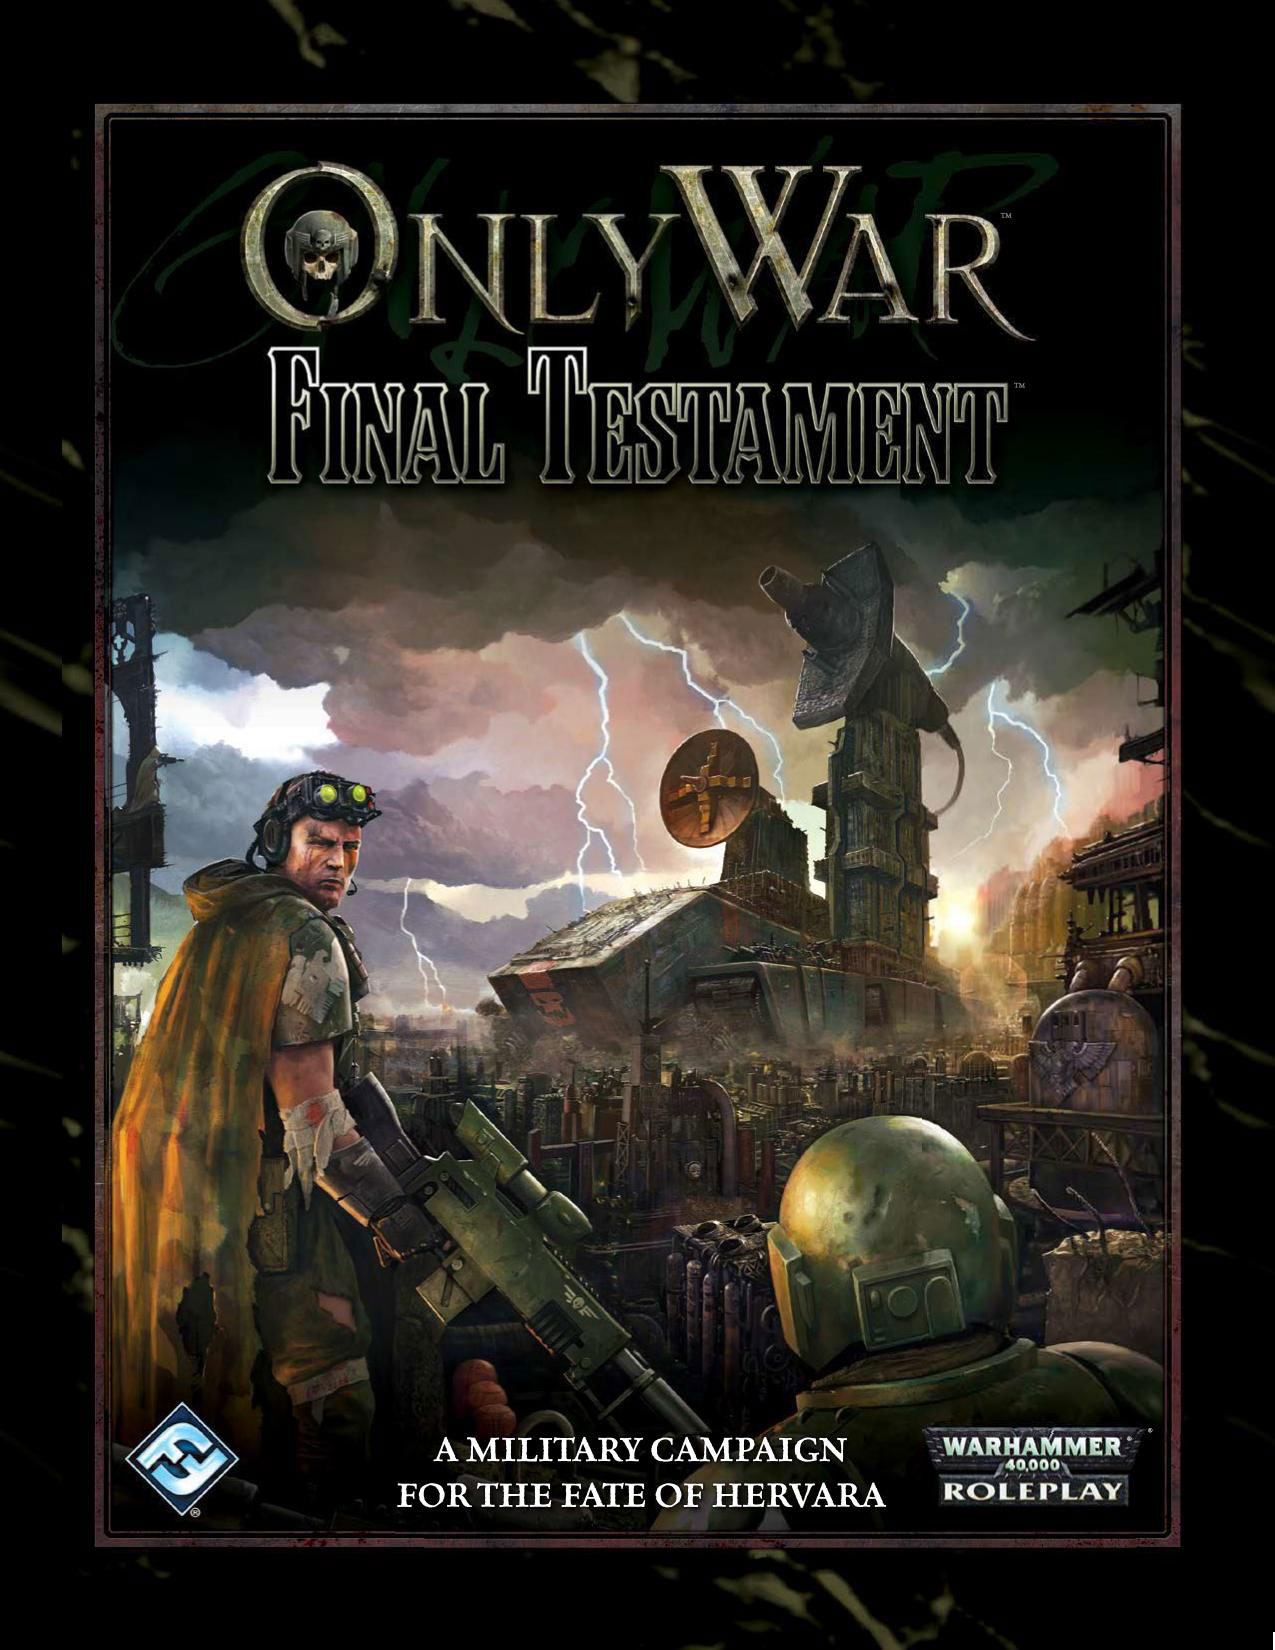 Library Only War 40k Rpg Tools